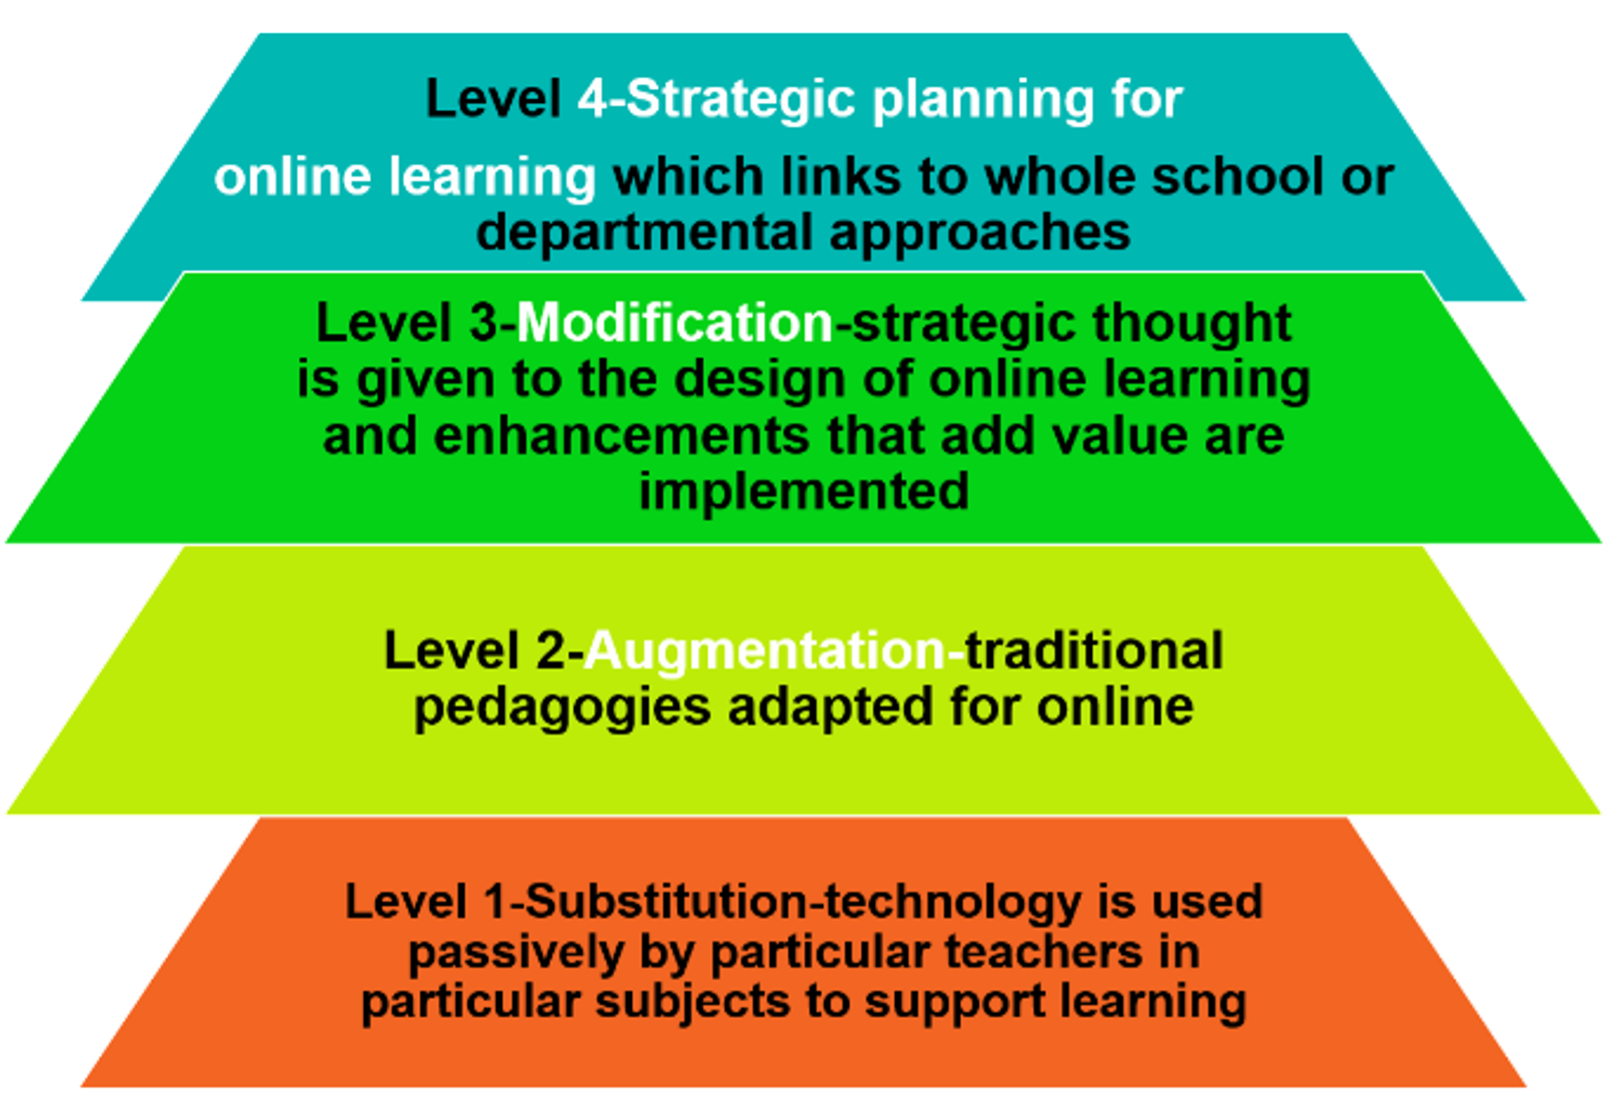 level I – this is the lowest level of digital planning, in which technology is used passively by particular teachers in particular subjects to support learning. This level is termed – substitution. Level II this is where traditional pedagogy is adapted for online, this level is termed – augmentation. Level III – modification – this is where strategic thought is given to the design of online learning and enhancements that add value are implemented. Level IV – strategic planning for online learning – this links to a whole school or departmental approach.